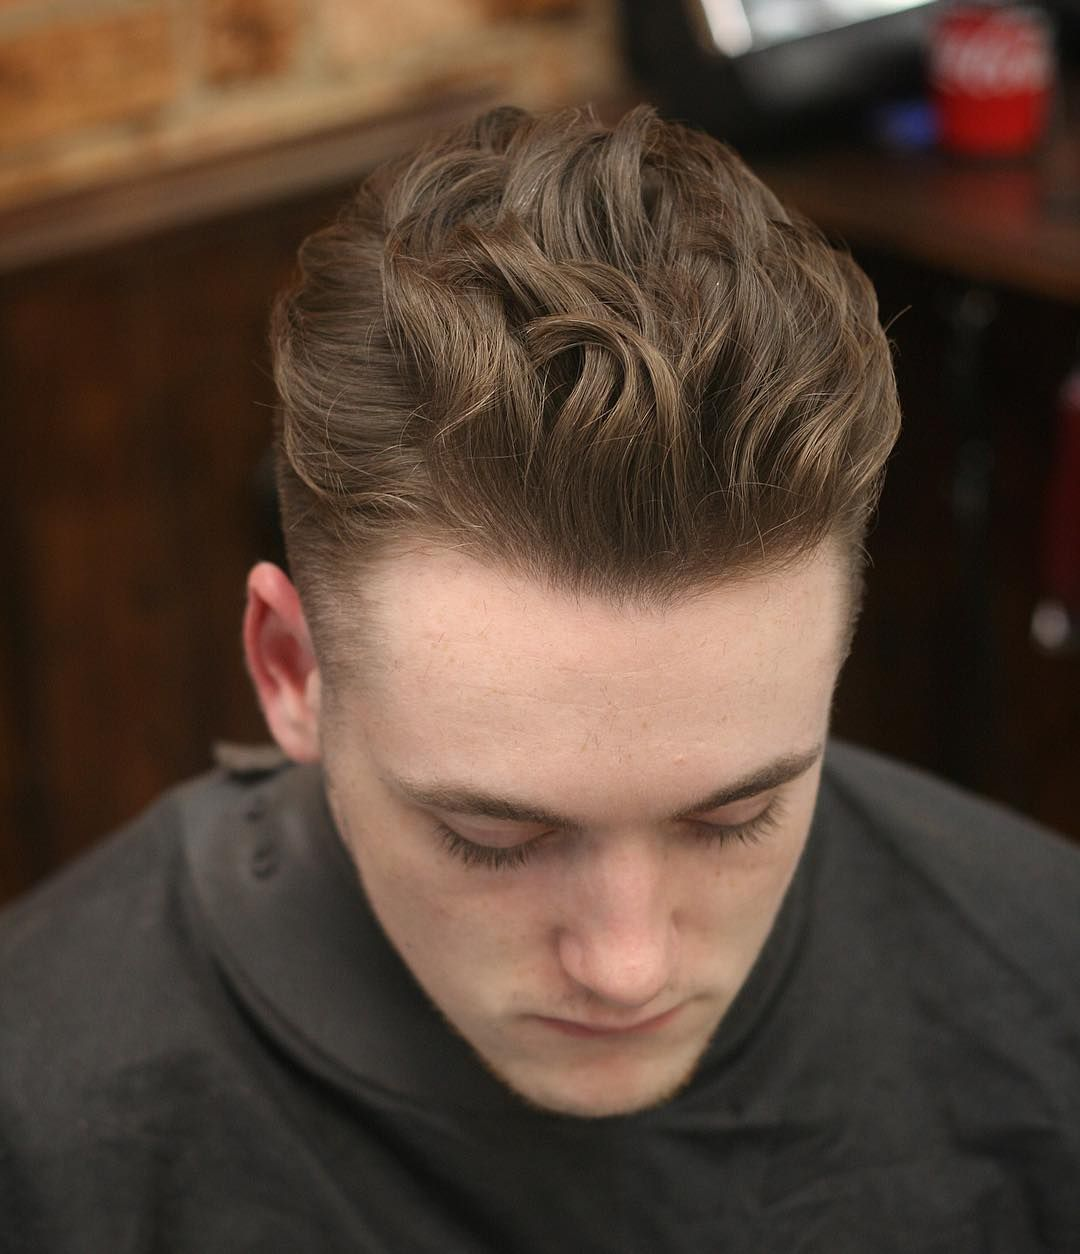 100 Men S Hairstyles Haircuts For Men 2021 Update Wavy Hair Men Haircuts For Men Mens Hairstyles